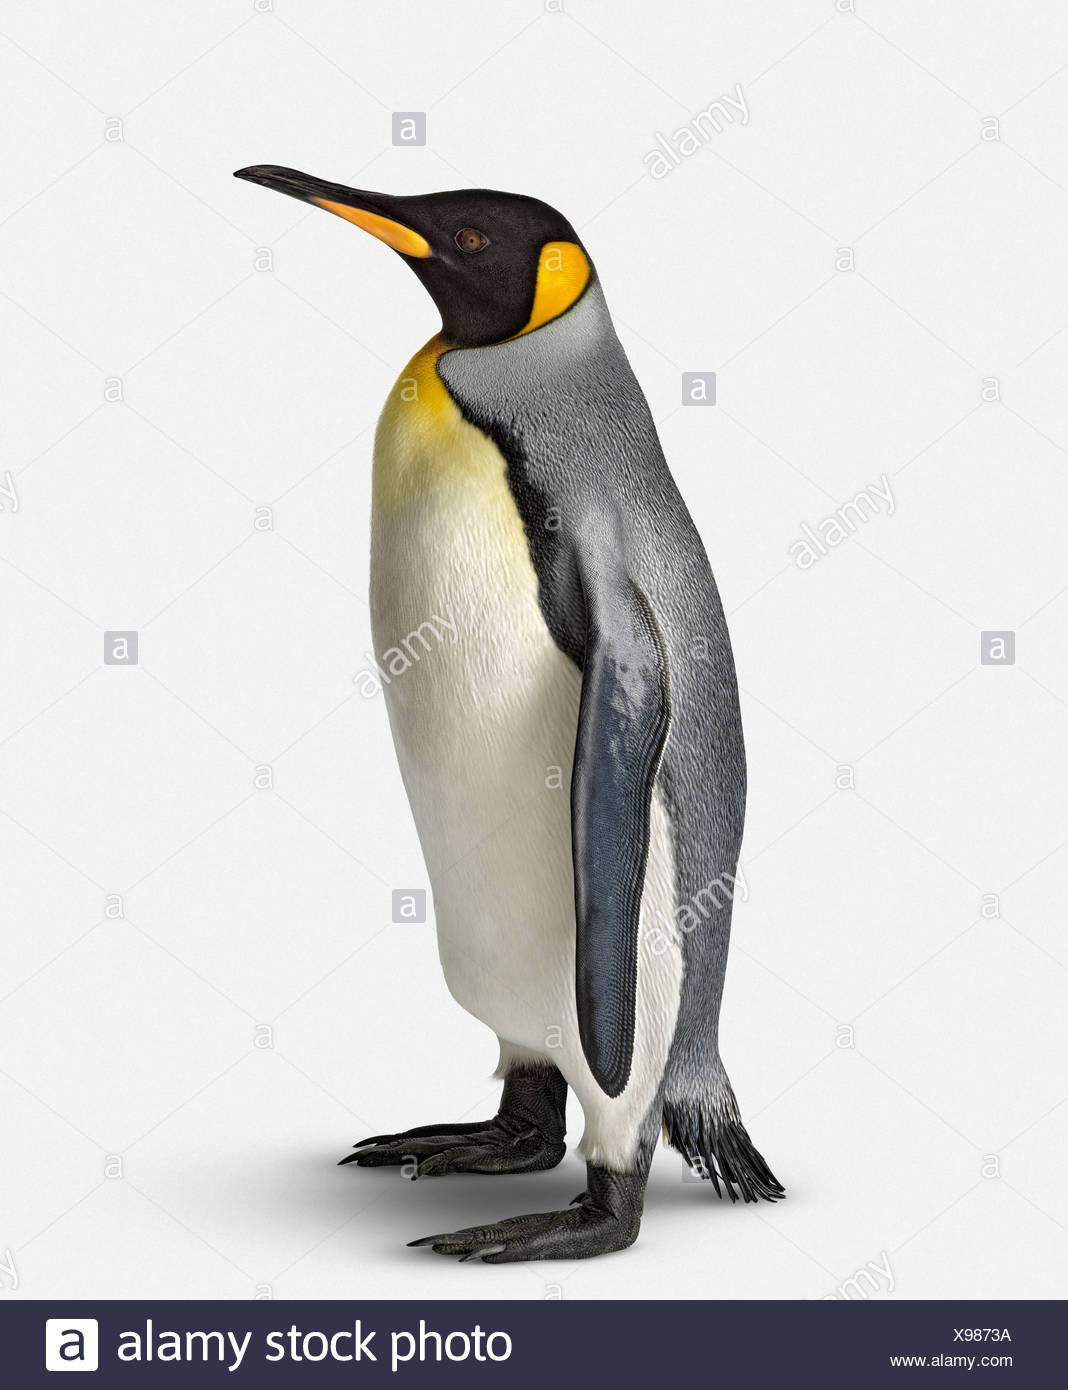 Royal Penguin (Aptenodytes patagonicus) on white background, close-up - Stock Image